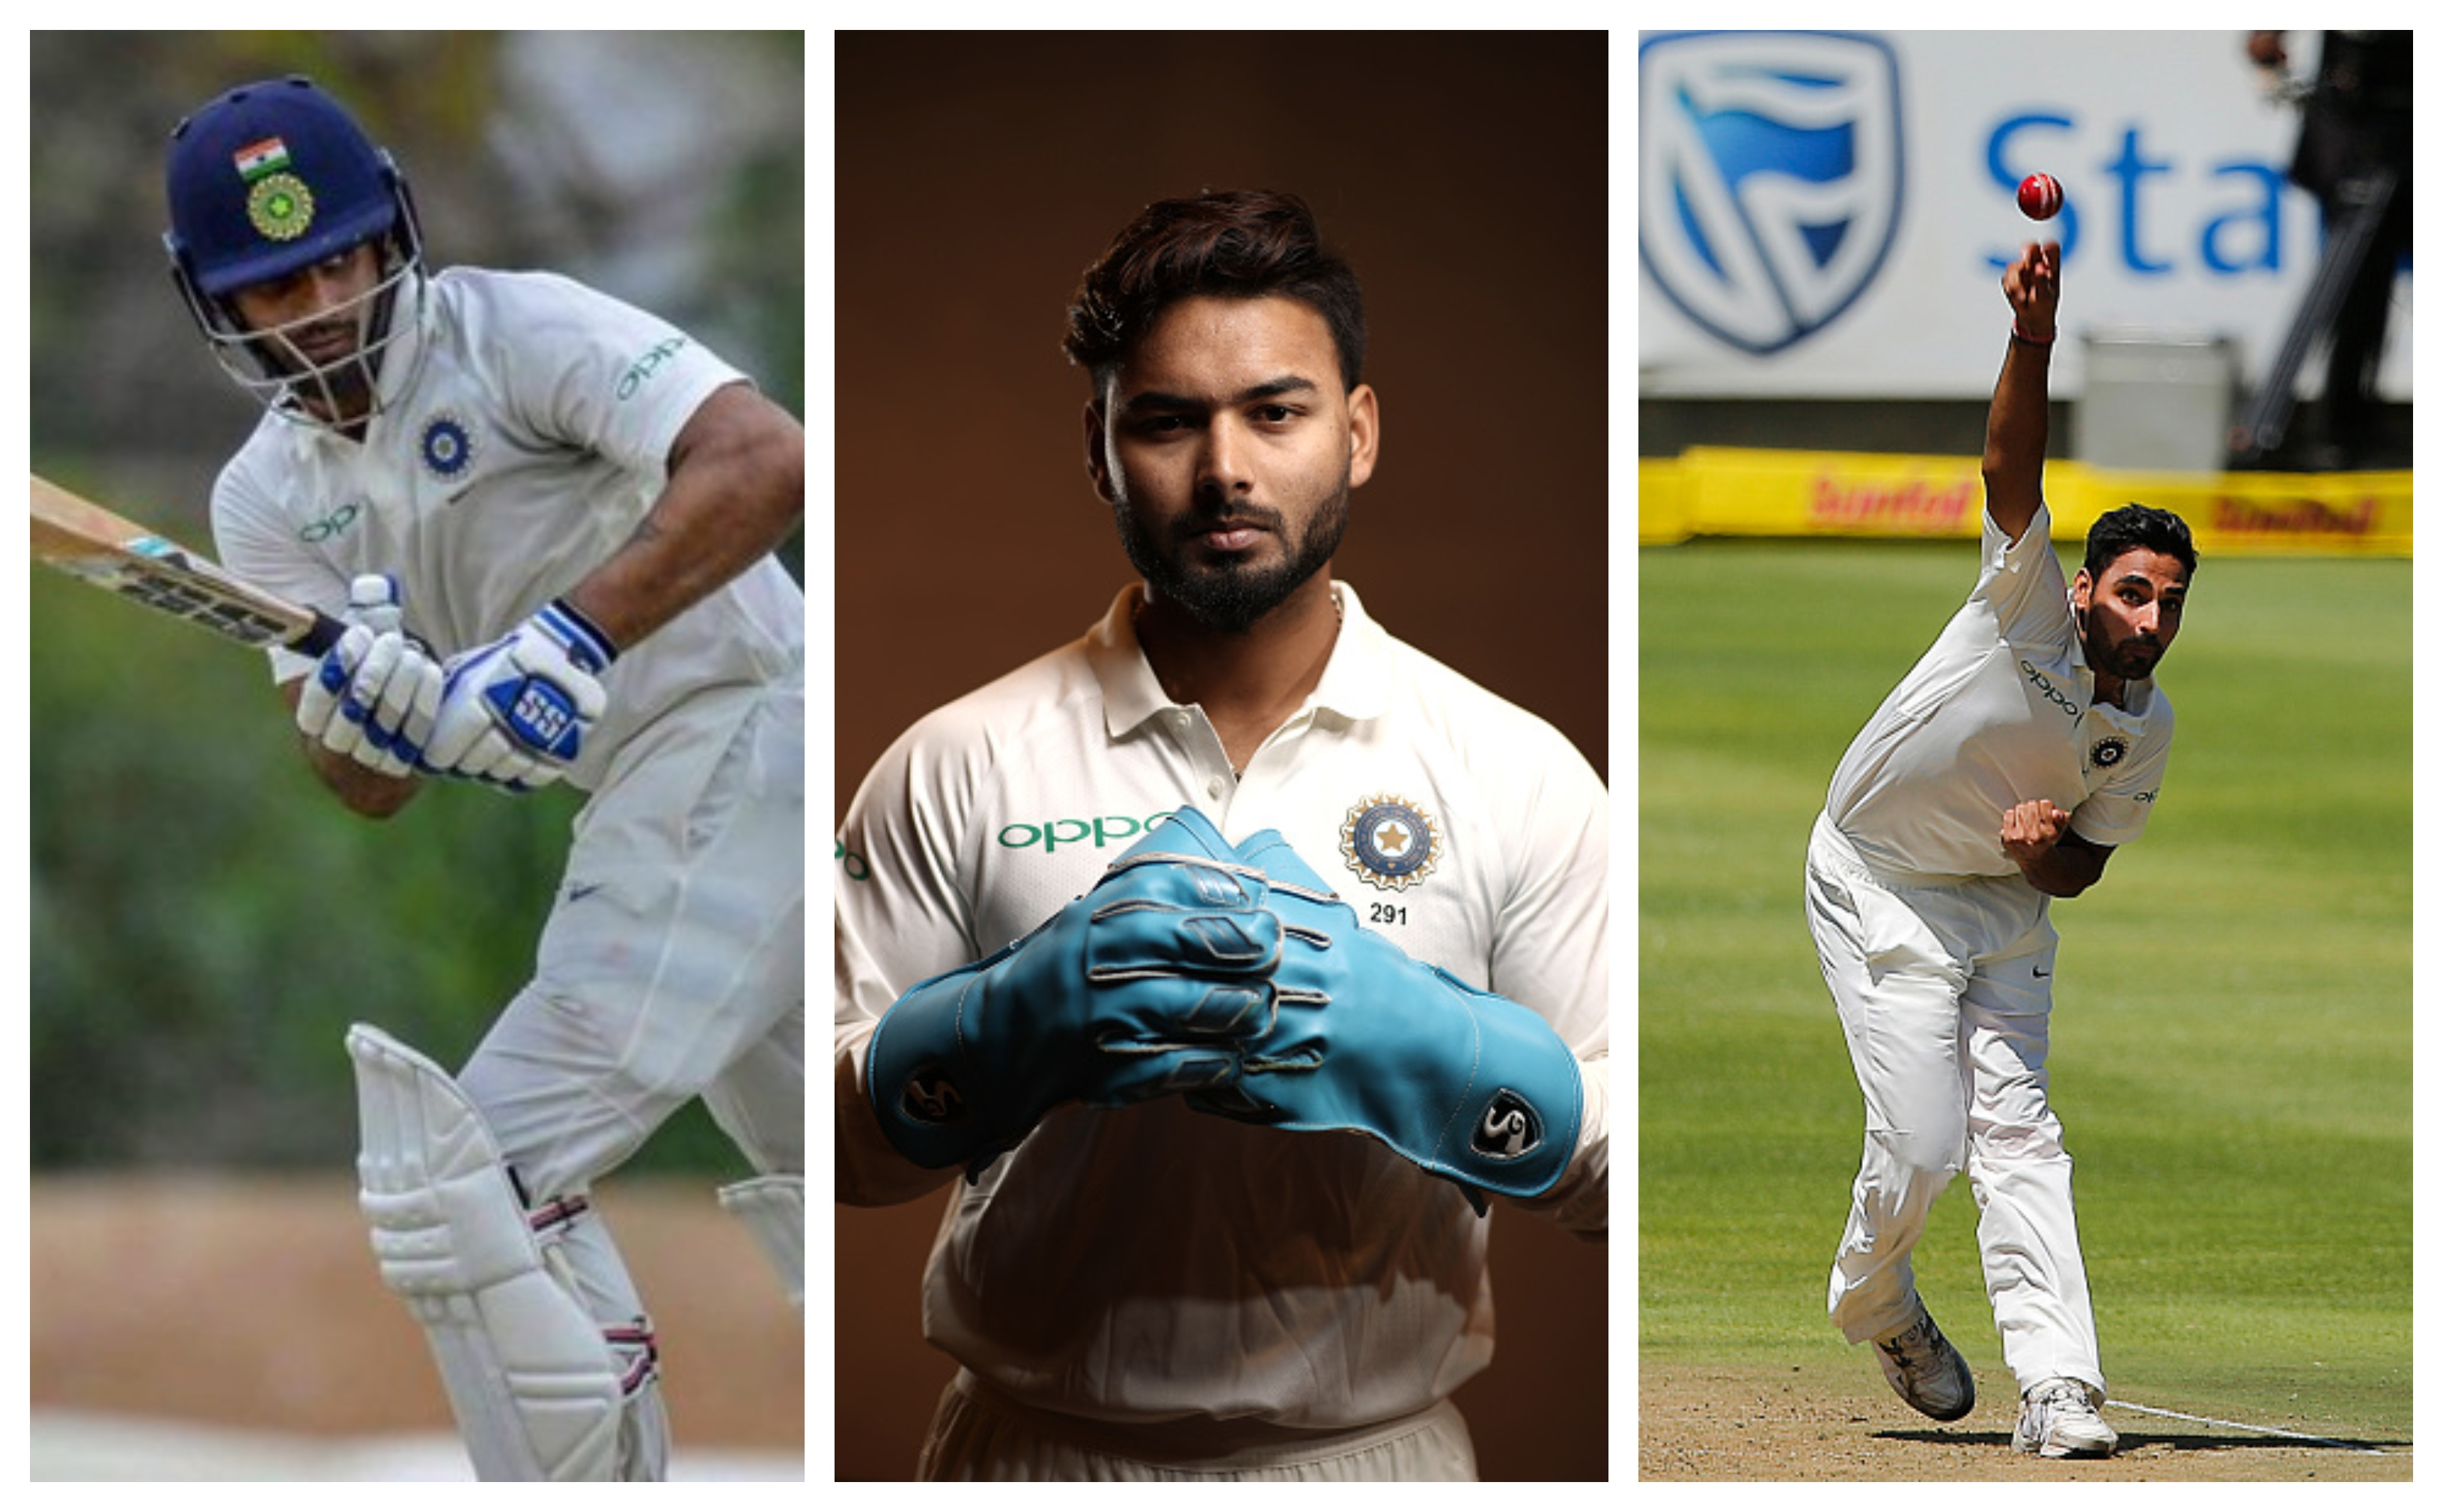 Pant continues to evolve as a keeper, as India are likely to bring in Bhuvi. While Hanuma Vihari has a career-defining opportunity | Getty